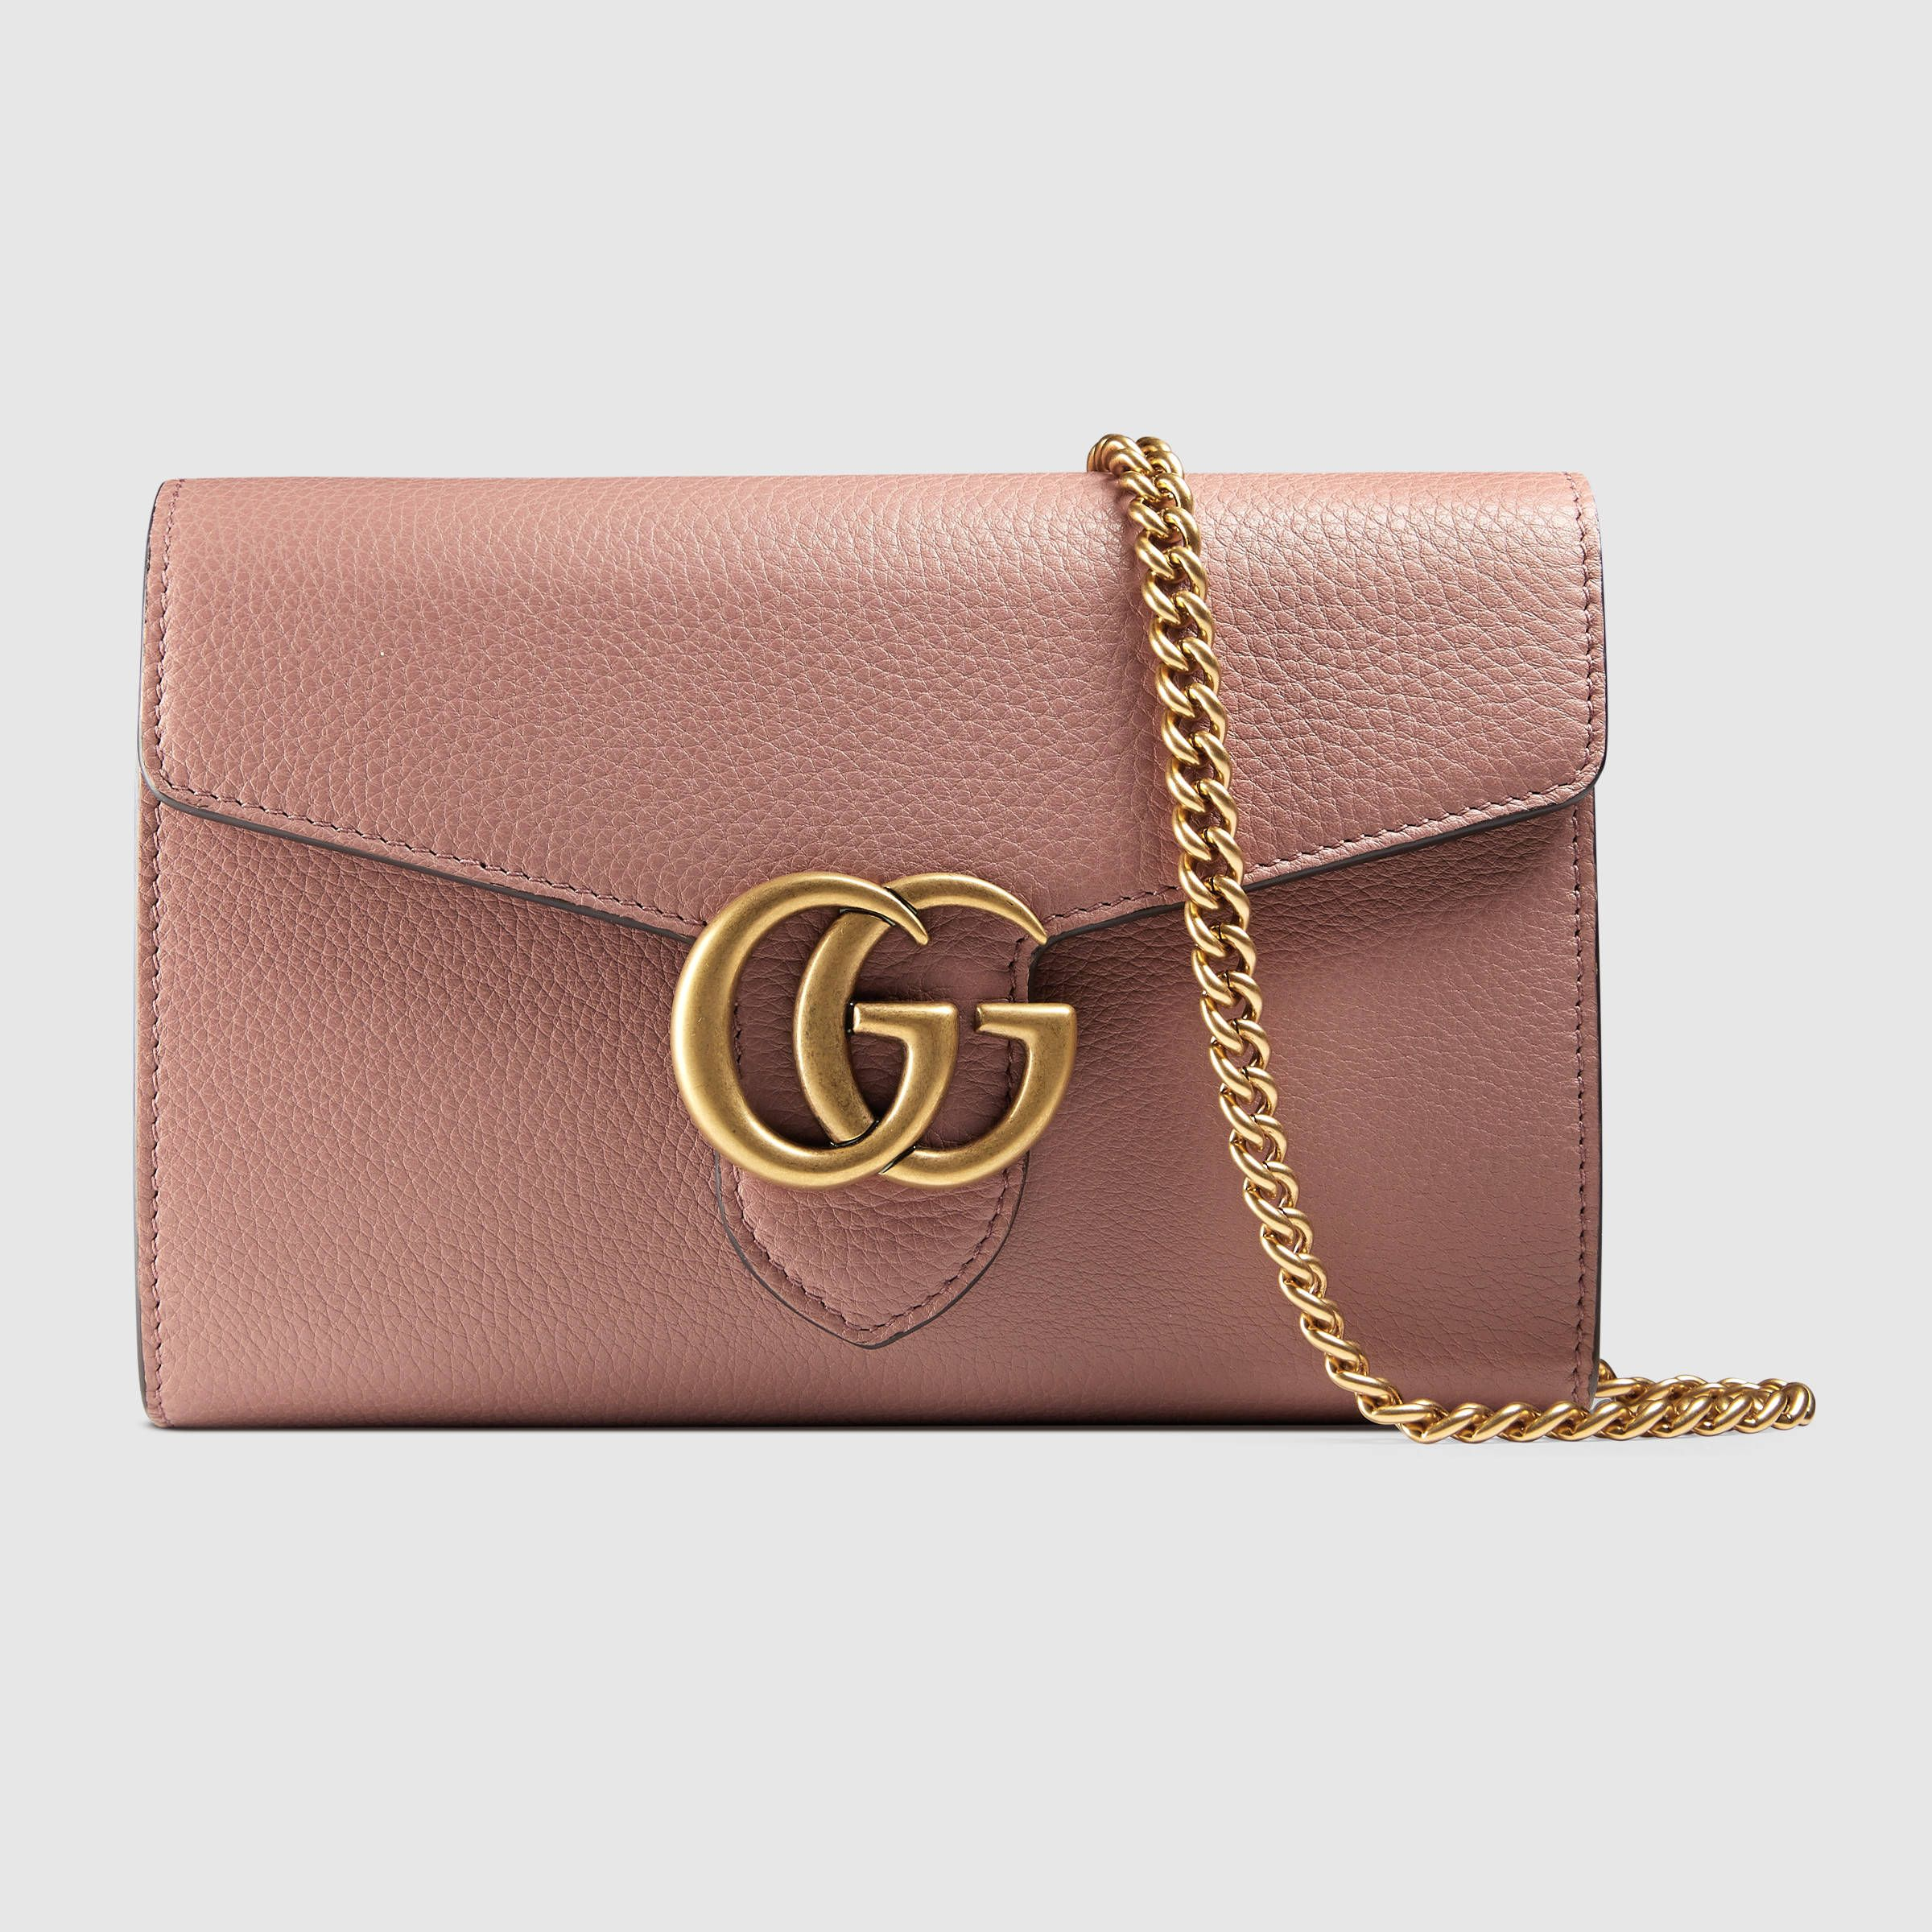 gucci bags and wallets. shop the gg marmont leather mini chain bag by gucci. wallet has a removable shoulder strap and extensive interior space. gucci bags wallets e